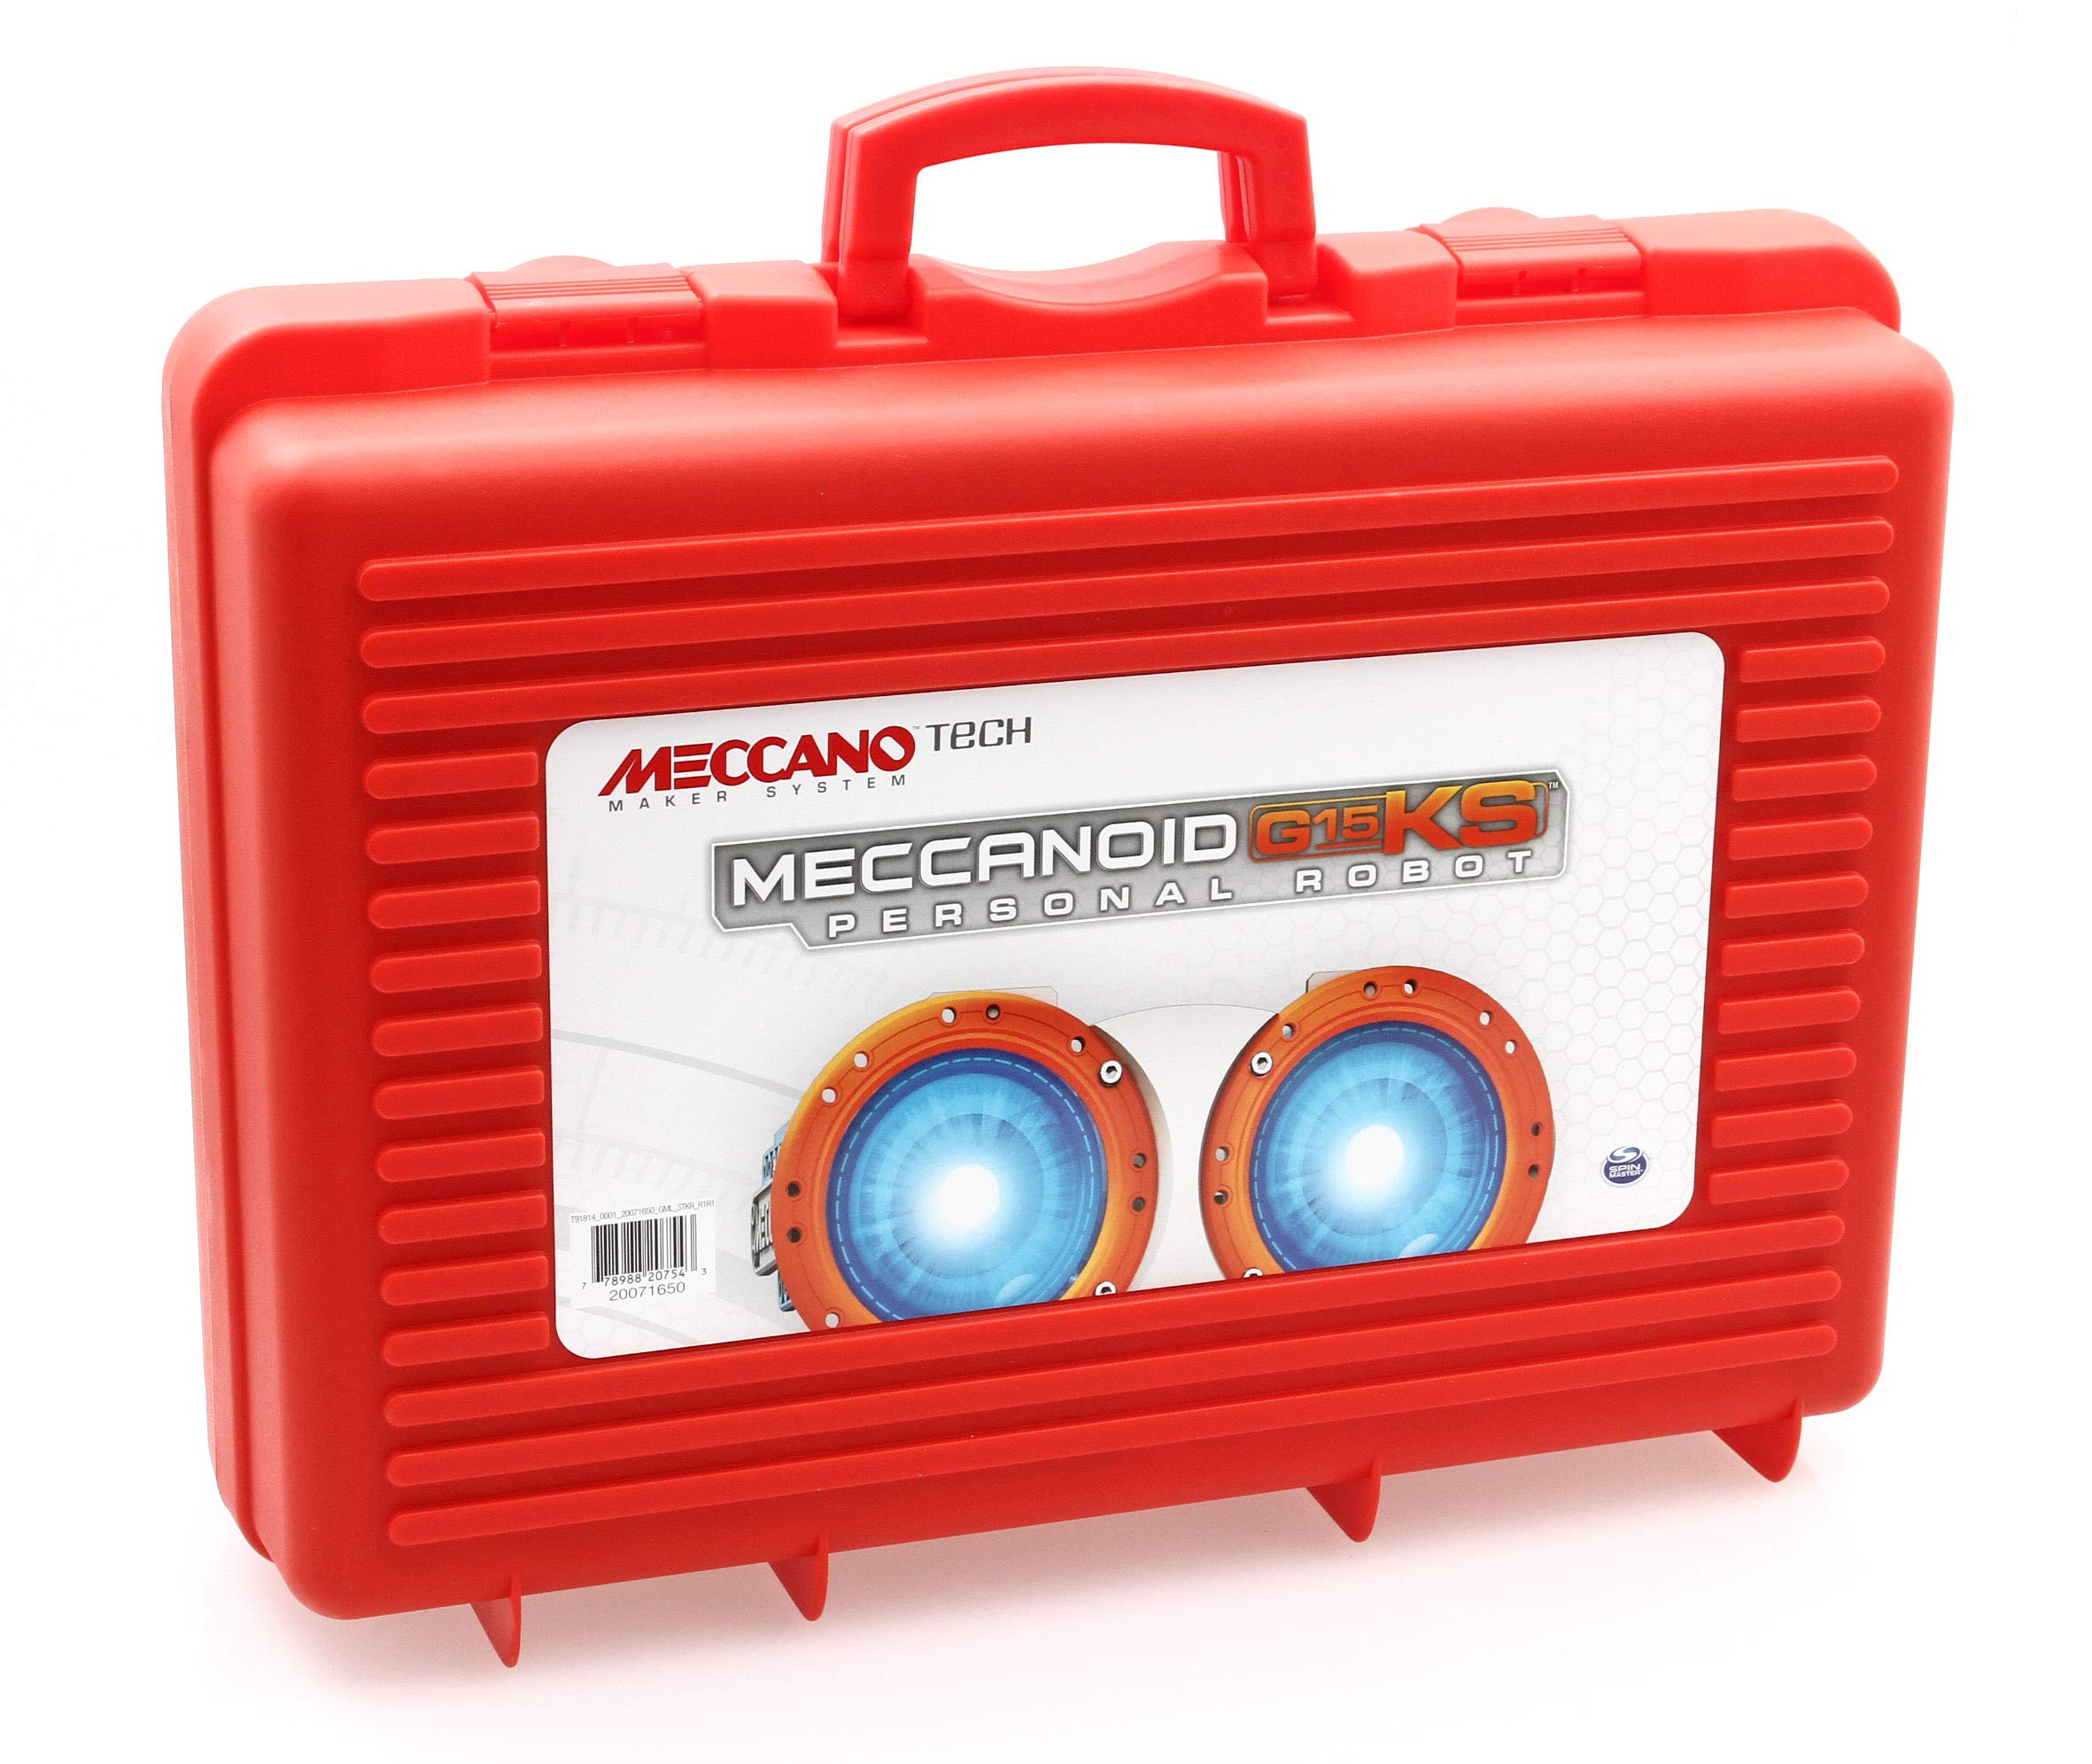 Meccano MeccaNoid G15KS 1243 Piece Robot Building Kit with Carrying Case by Meccano (Image #6)